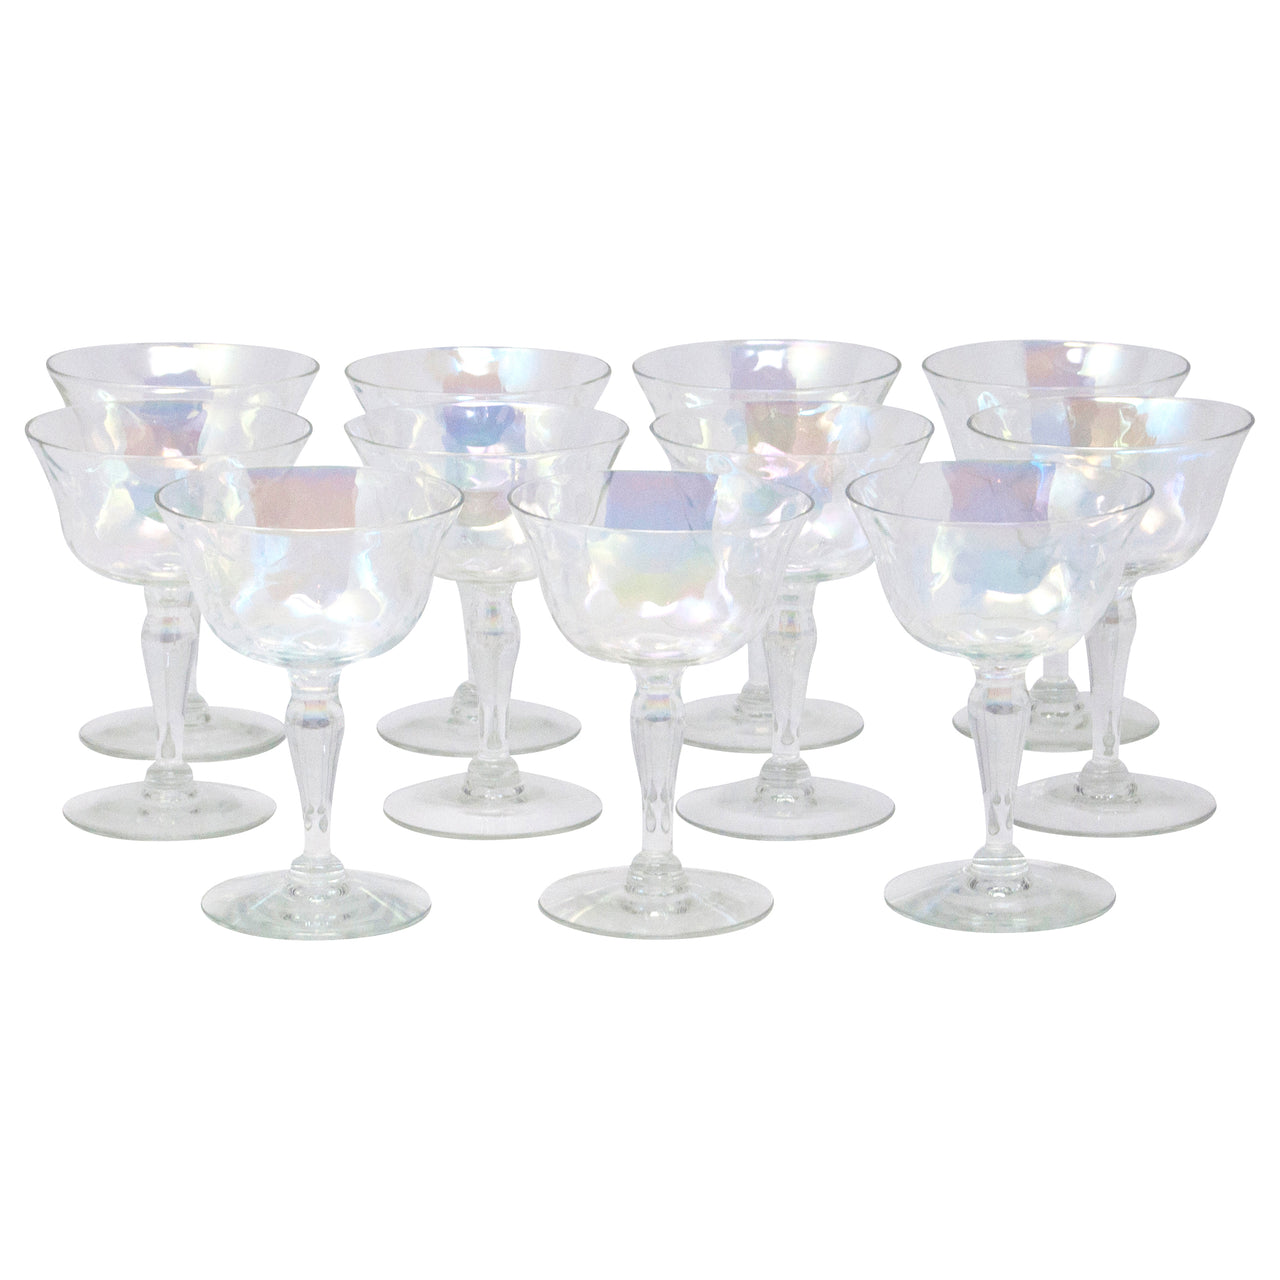 Vintage West Virginia Glass Iridescent Cocktail Glasses | The Hour Shop